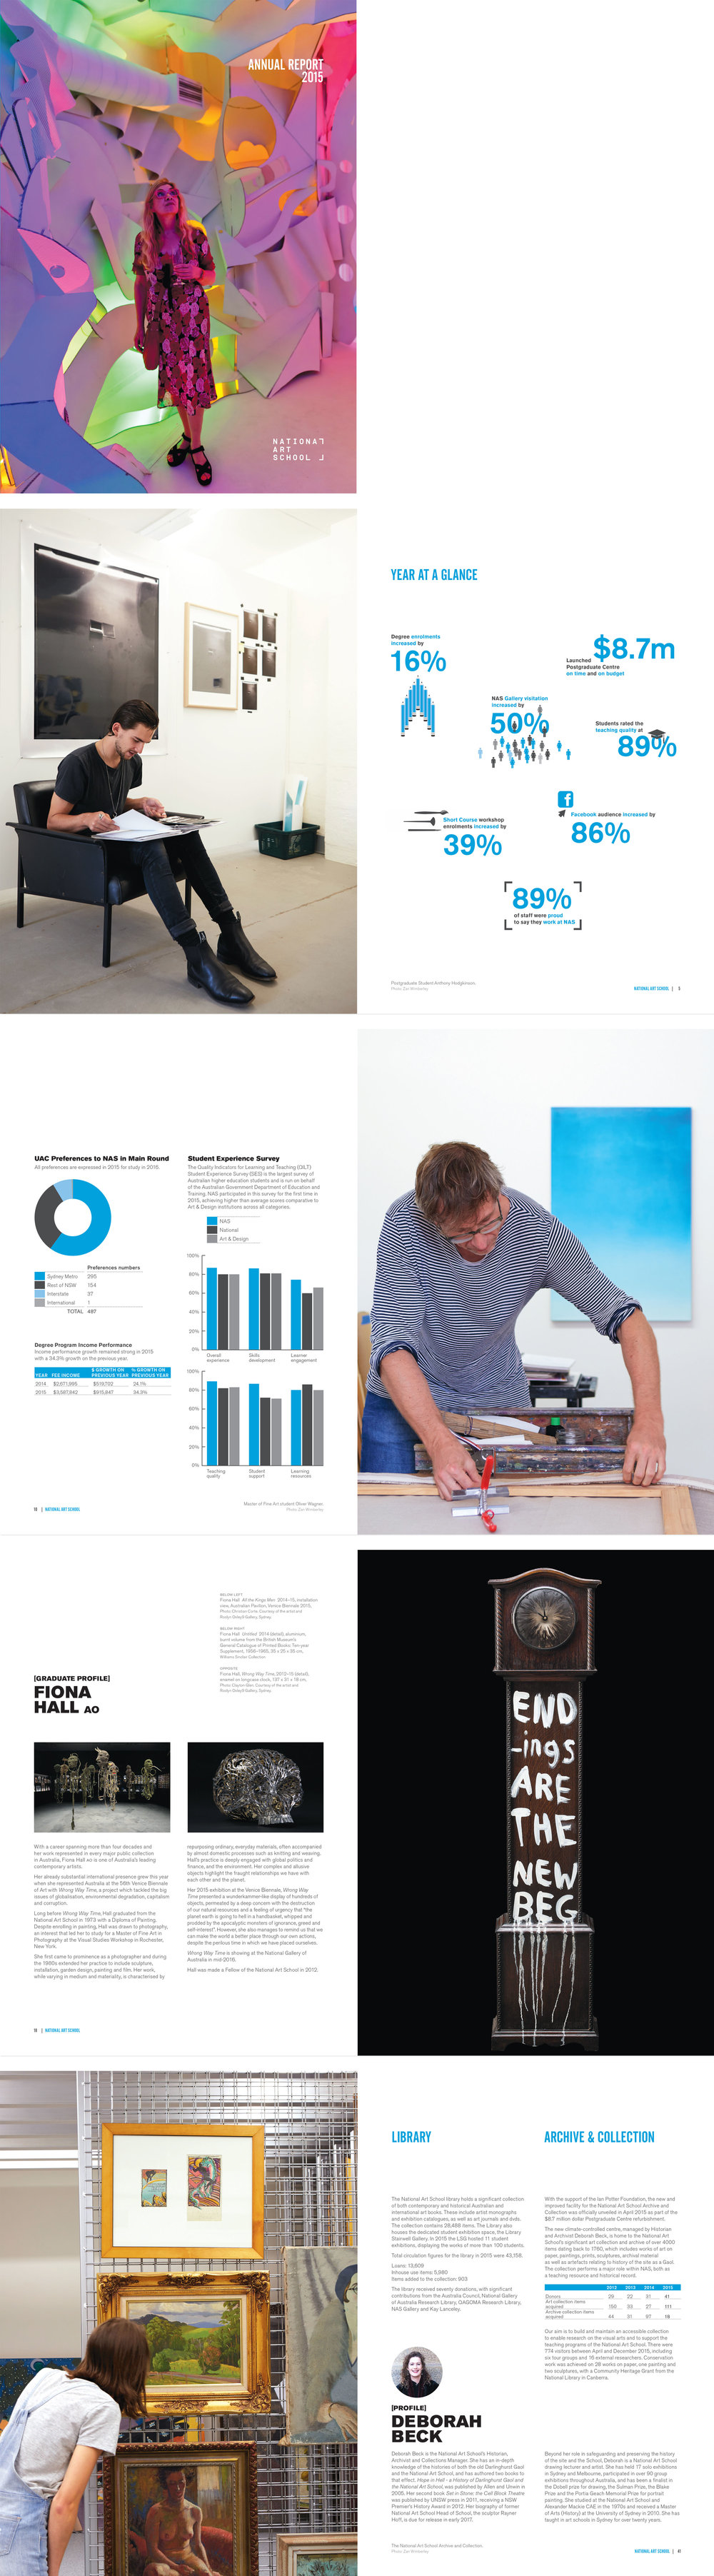 client   National Art School     project   Annual Report